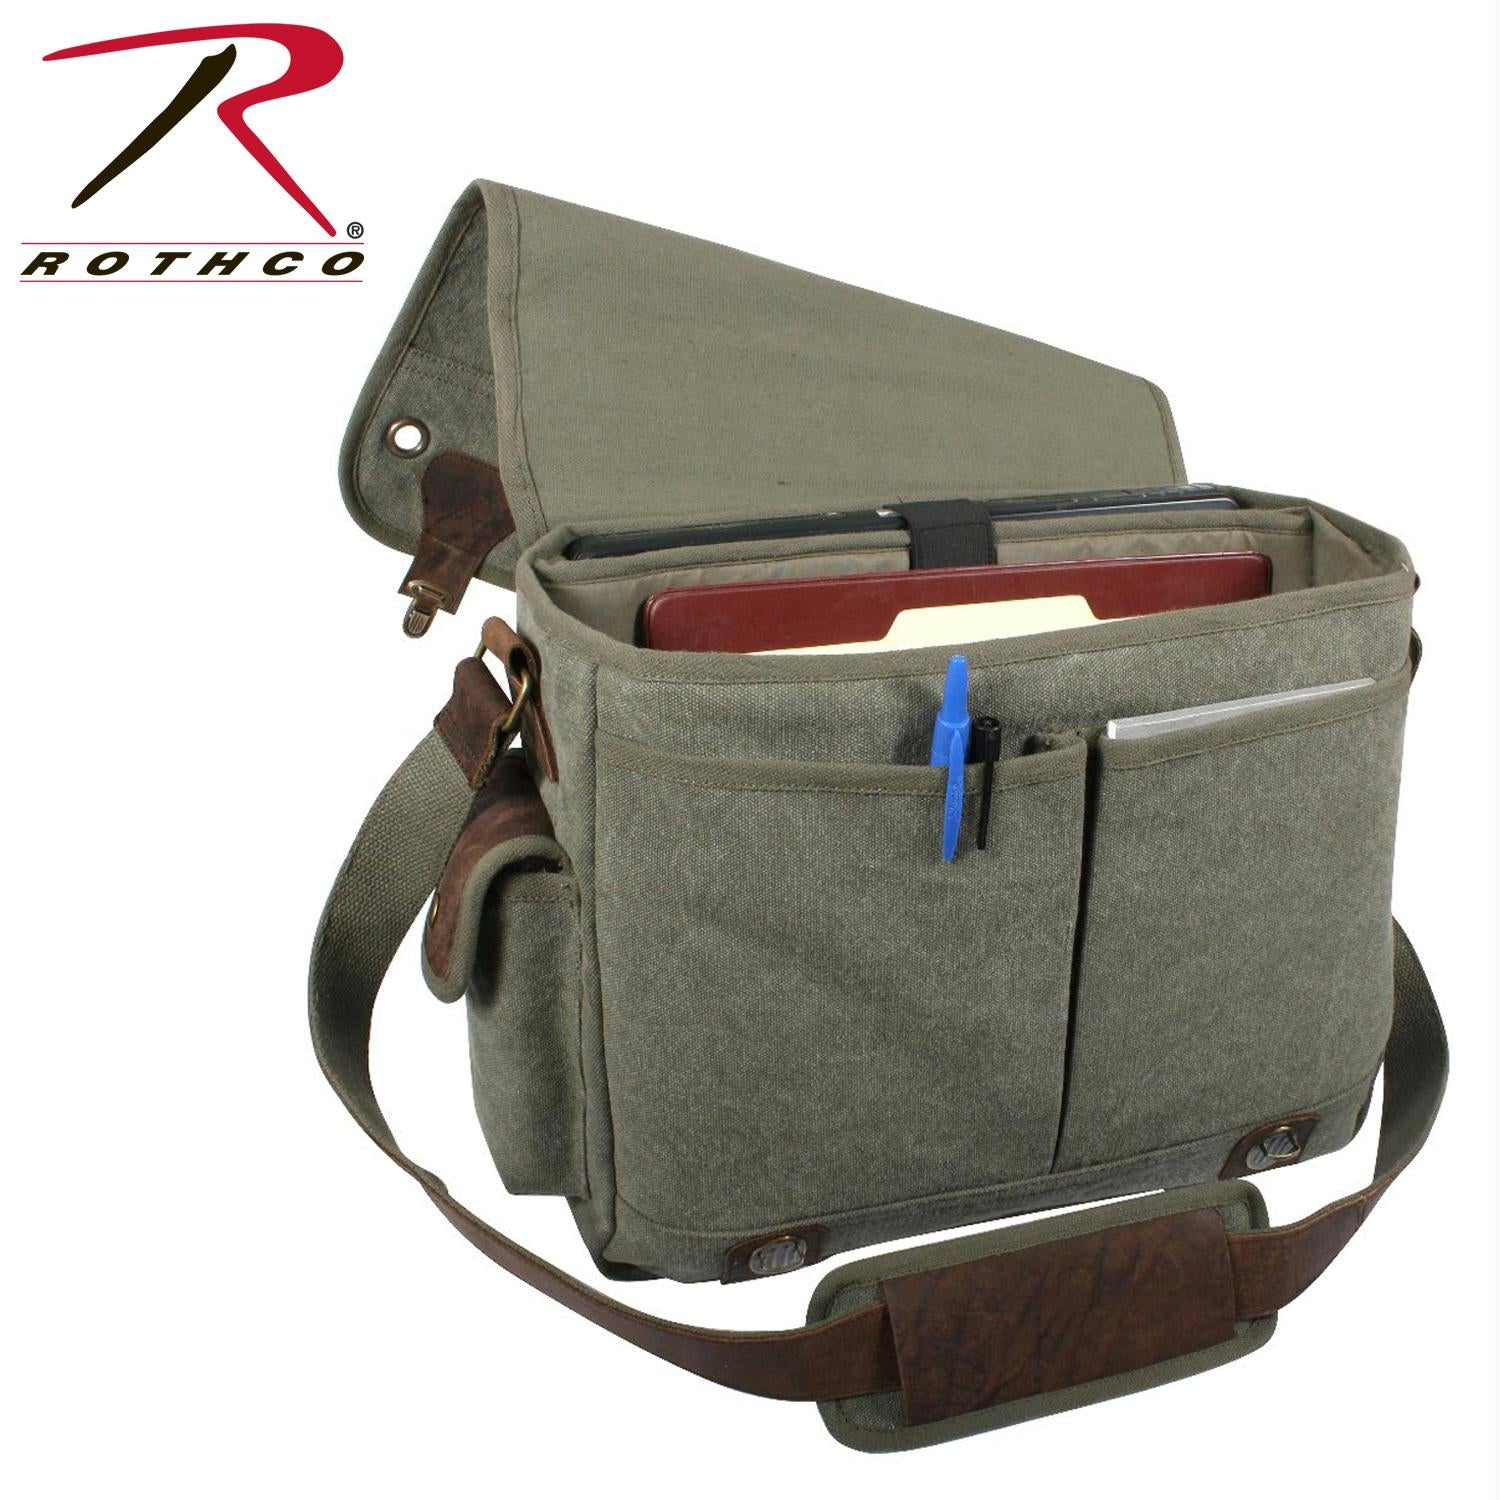 Rothco Canvas Trailblazer Laptop Bag - Olive Drab